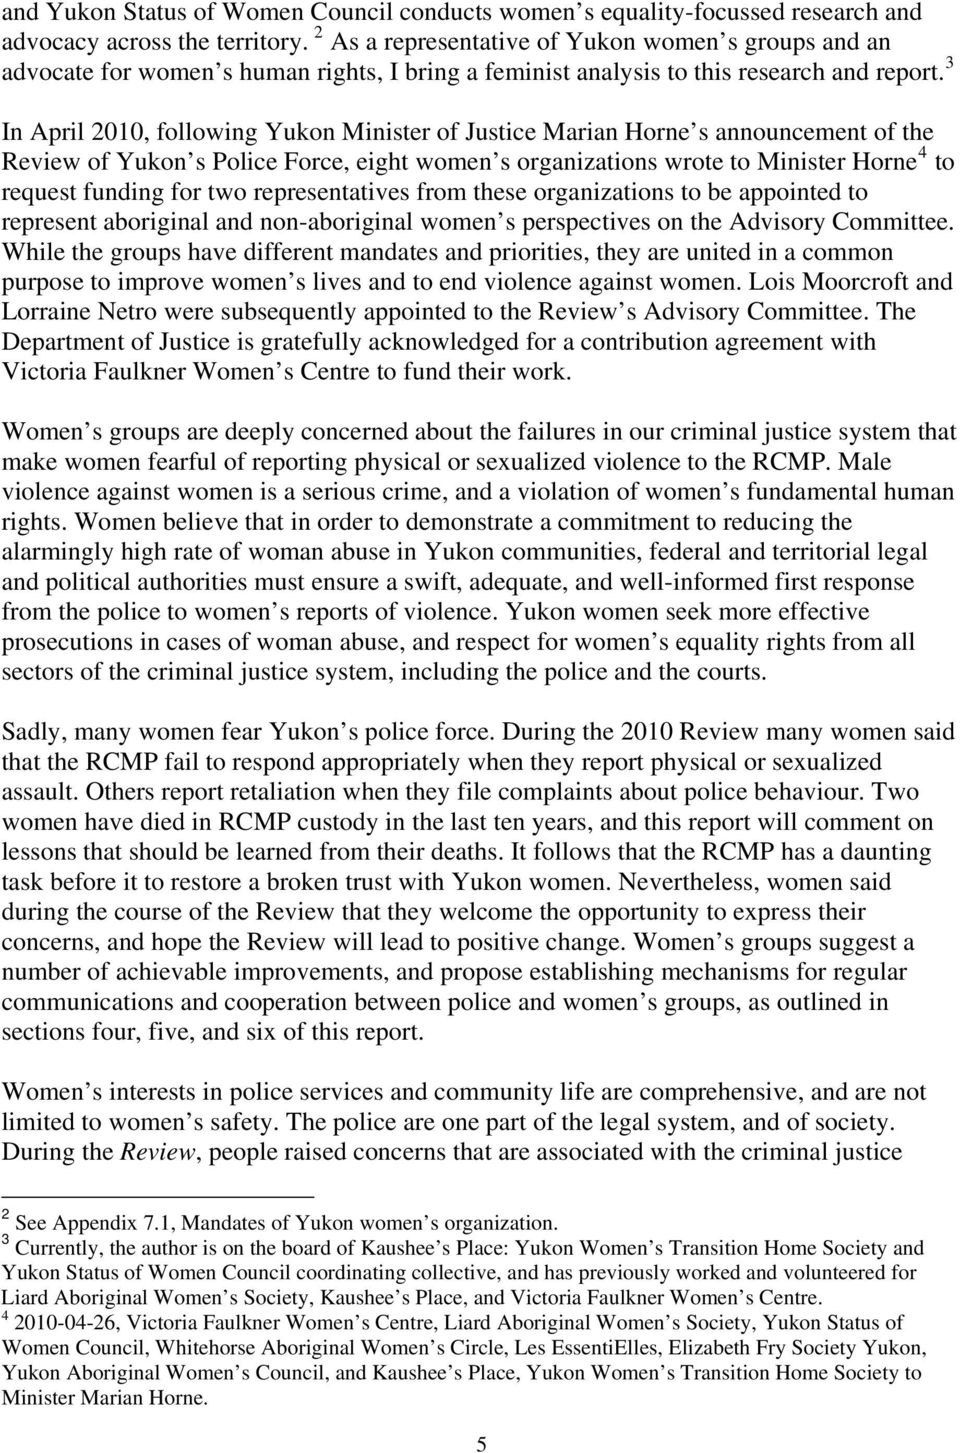 3 In April 2010, following Yukon Minister of Justice Marian Horne s announcement of the Review of Yukon s Police Force, eight women s organizations wrote to Minister Horne 4 to request funding for